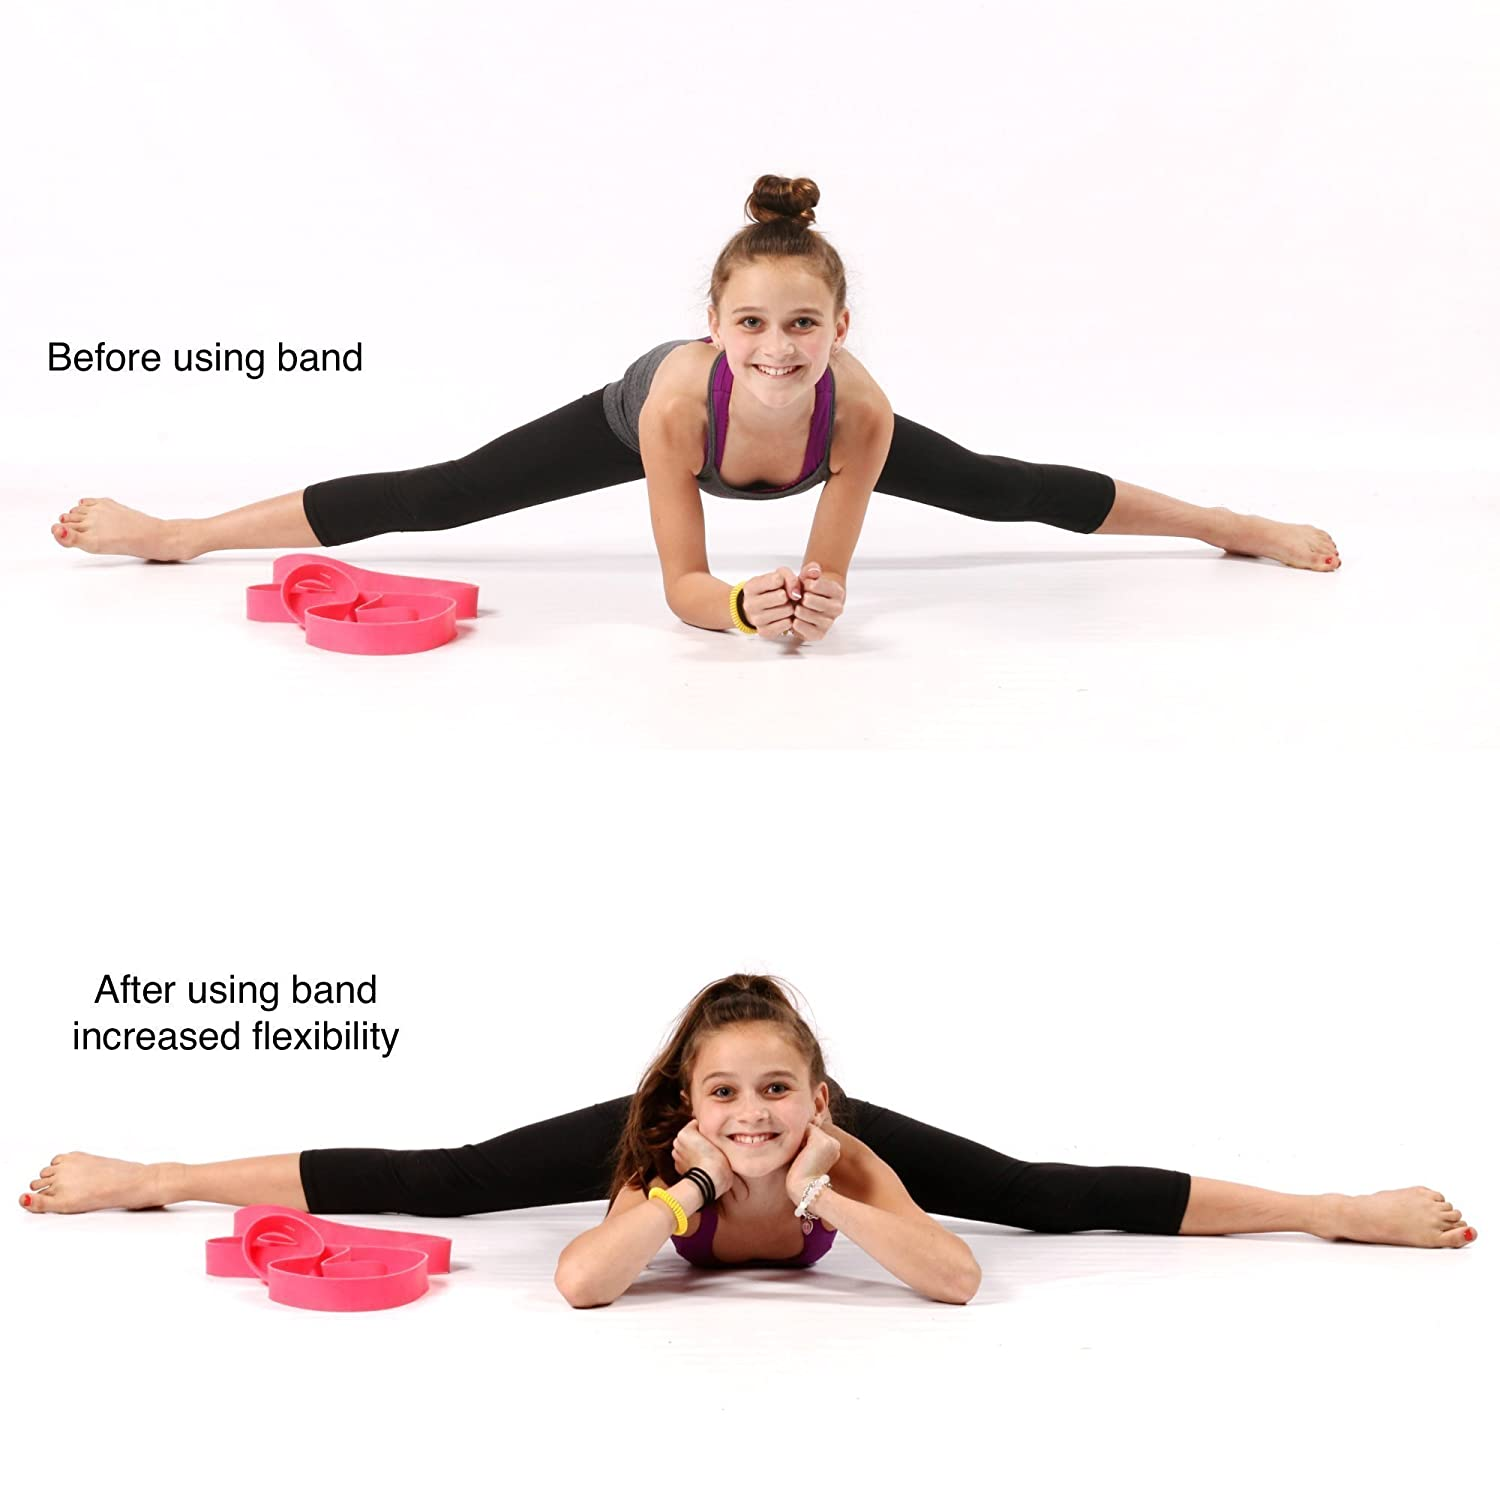 Watch Q: I have heard you should stretch before your exercises, but I have also heard it is better to stretch after your exercises. Which is correct and what are some good stretches for walkers video